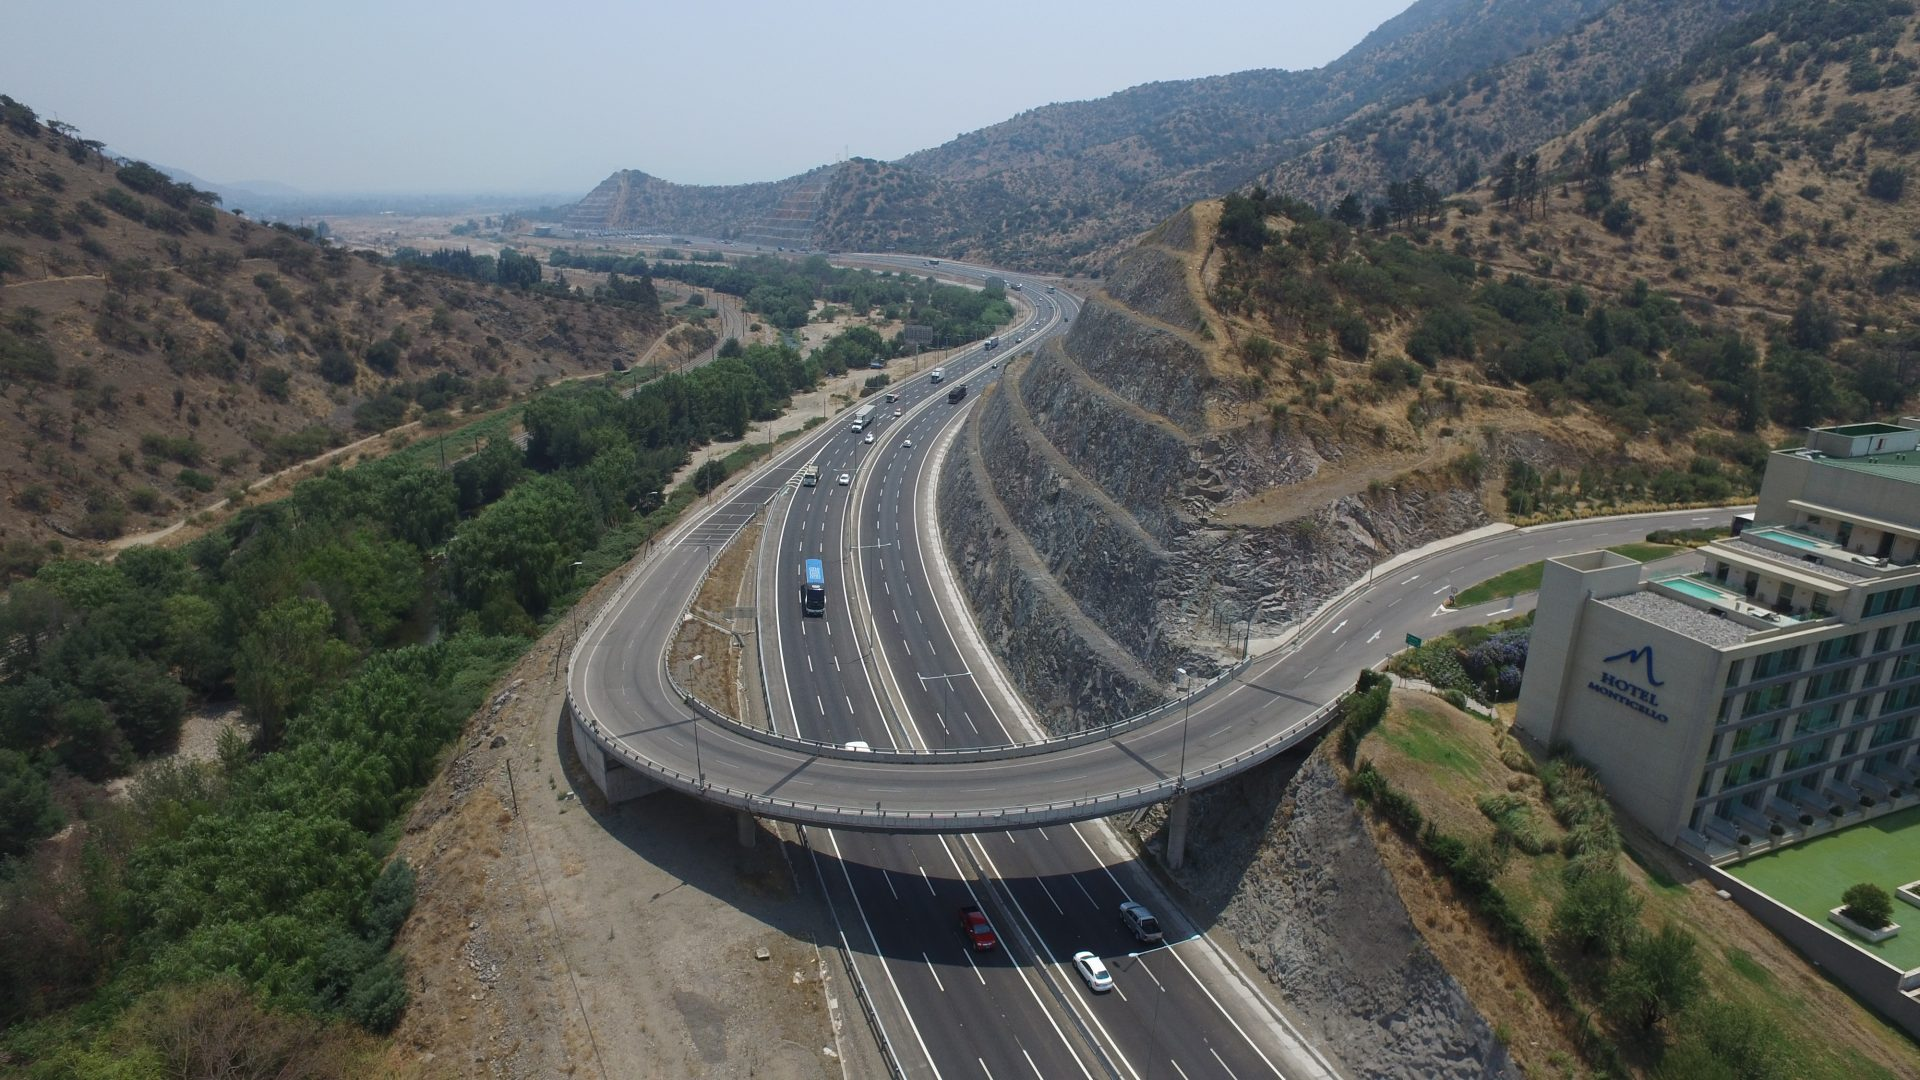 The ruta sur 5 highway in Chile